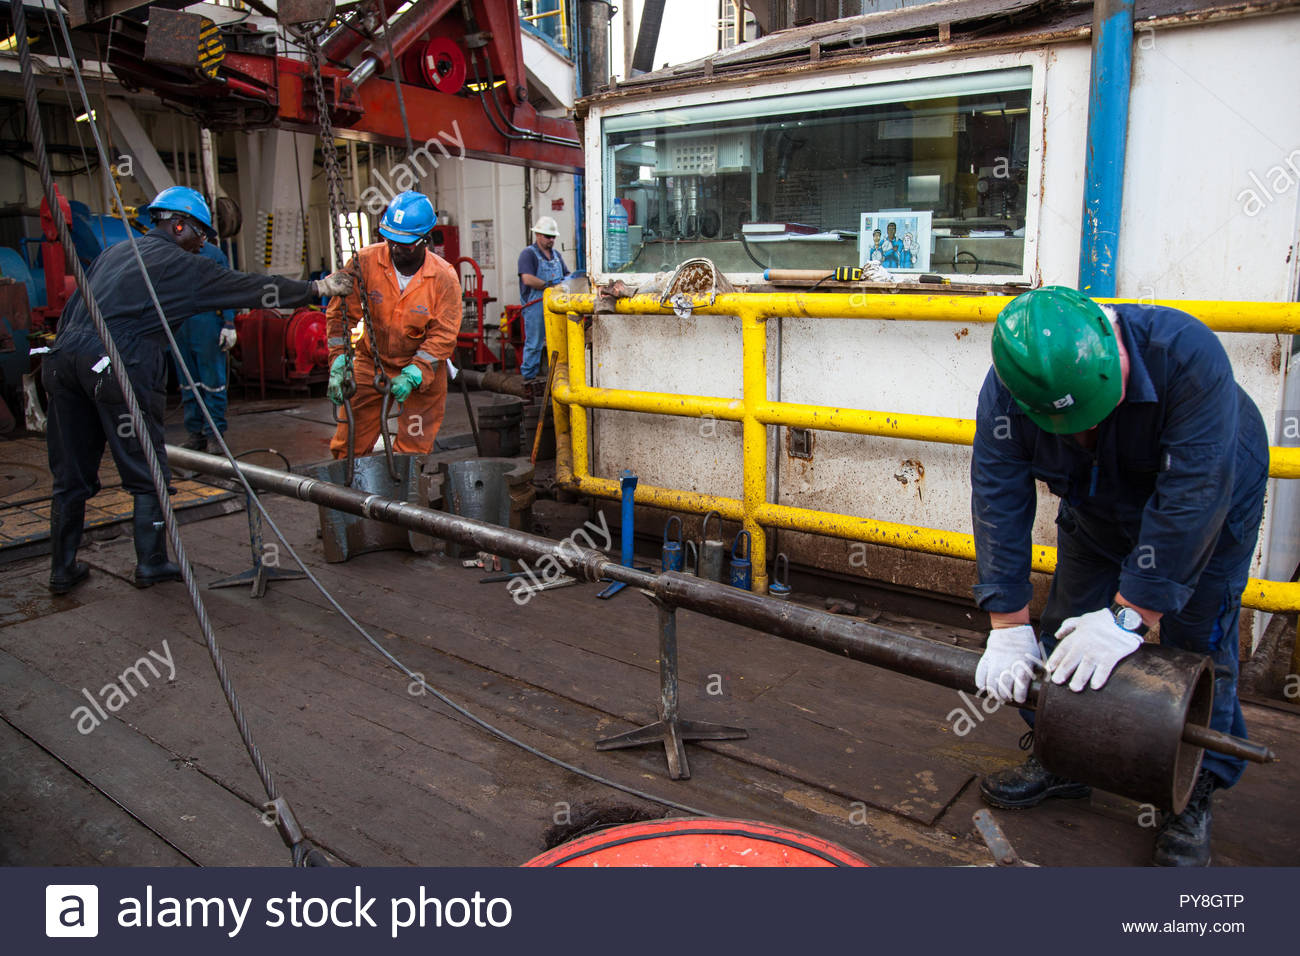 Offshore Oil Worker Stock Photos & Offshore Oil Worker Stock